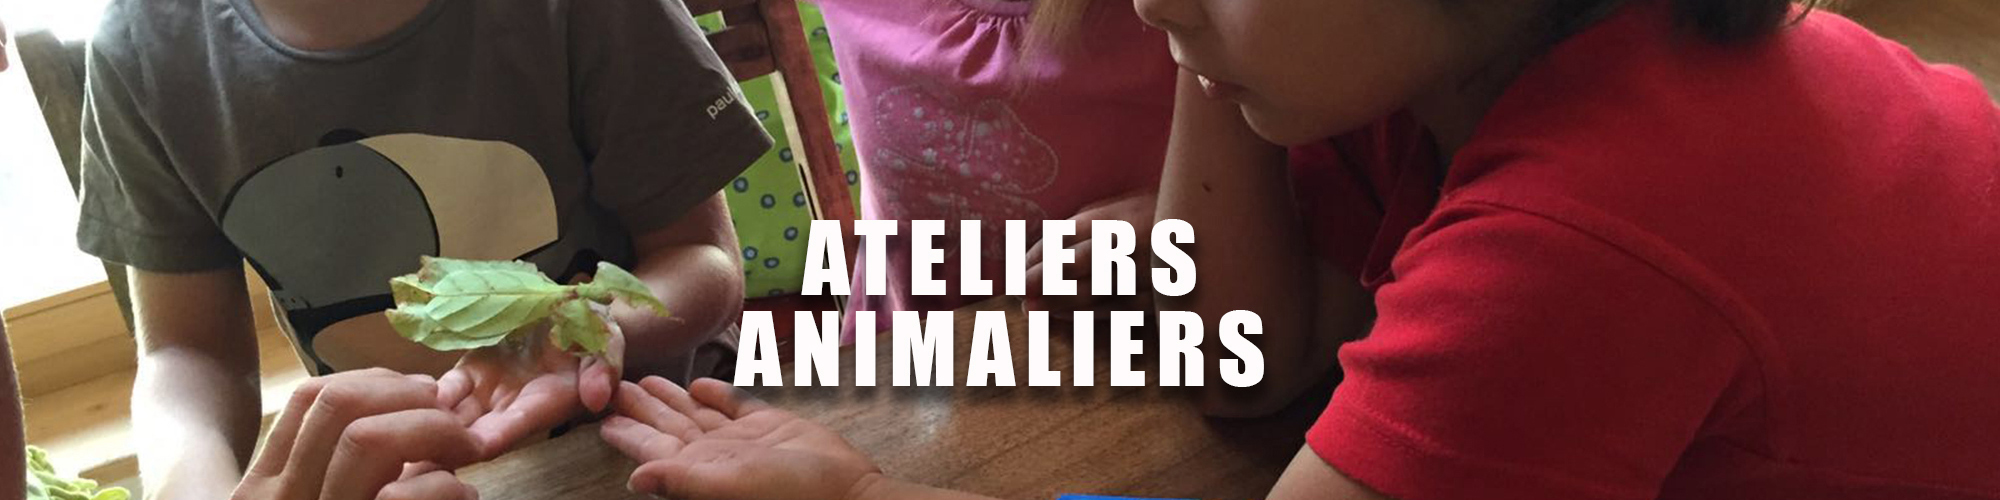 D animation animale ateliers